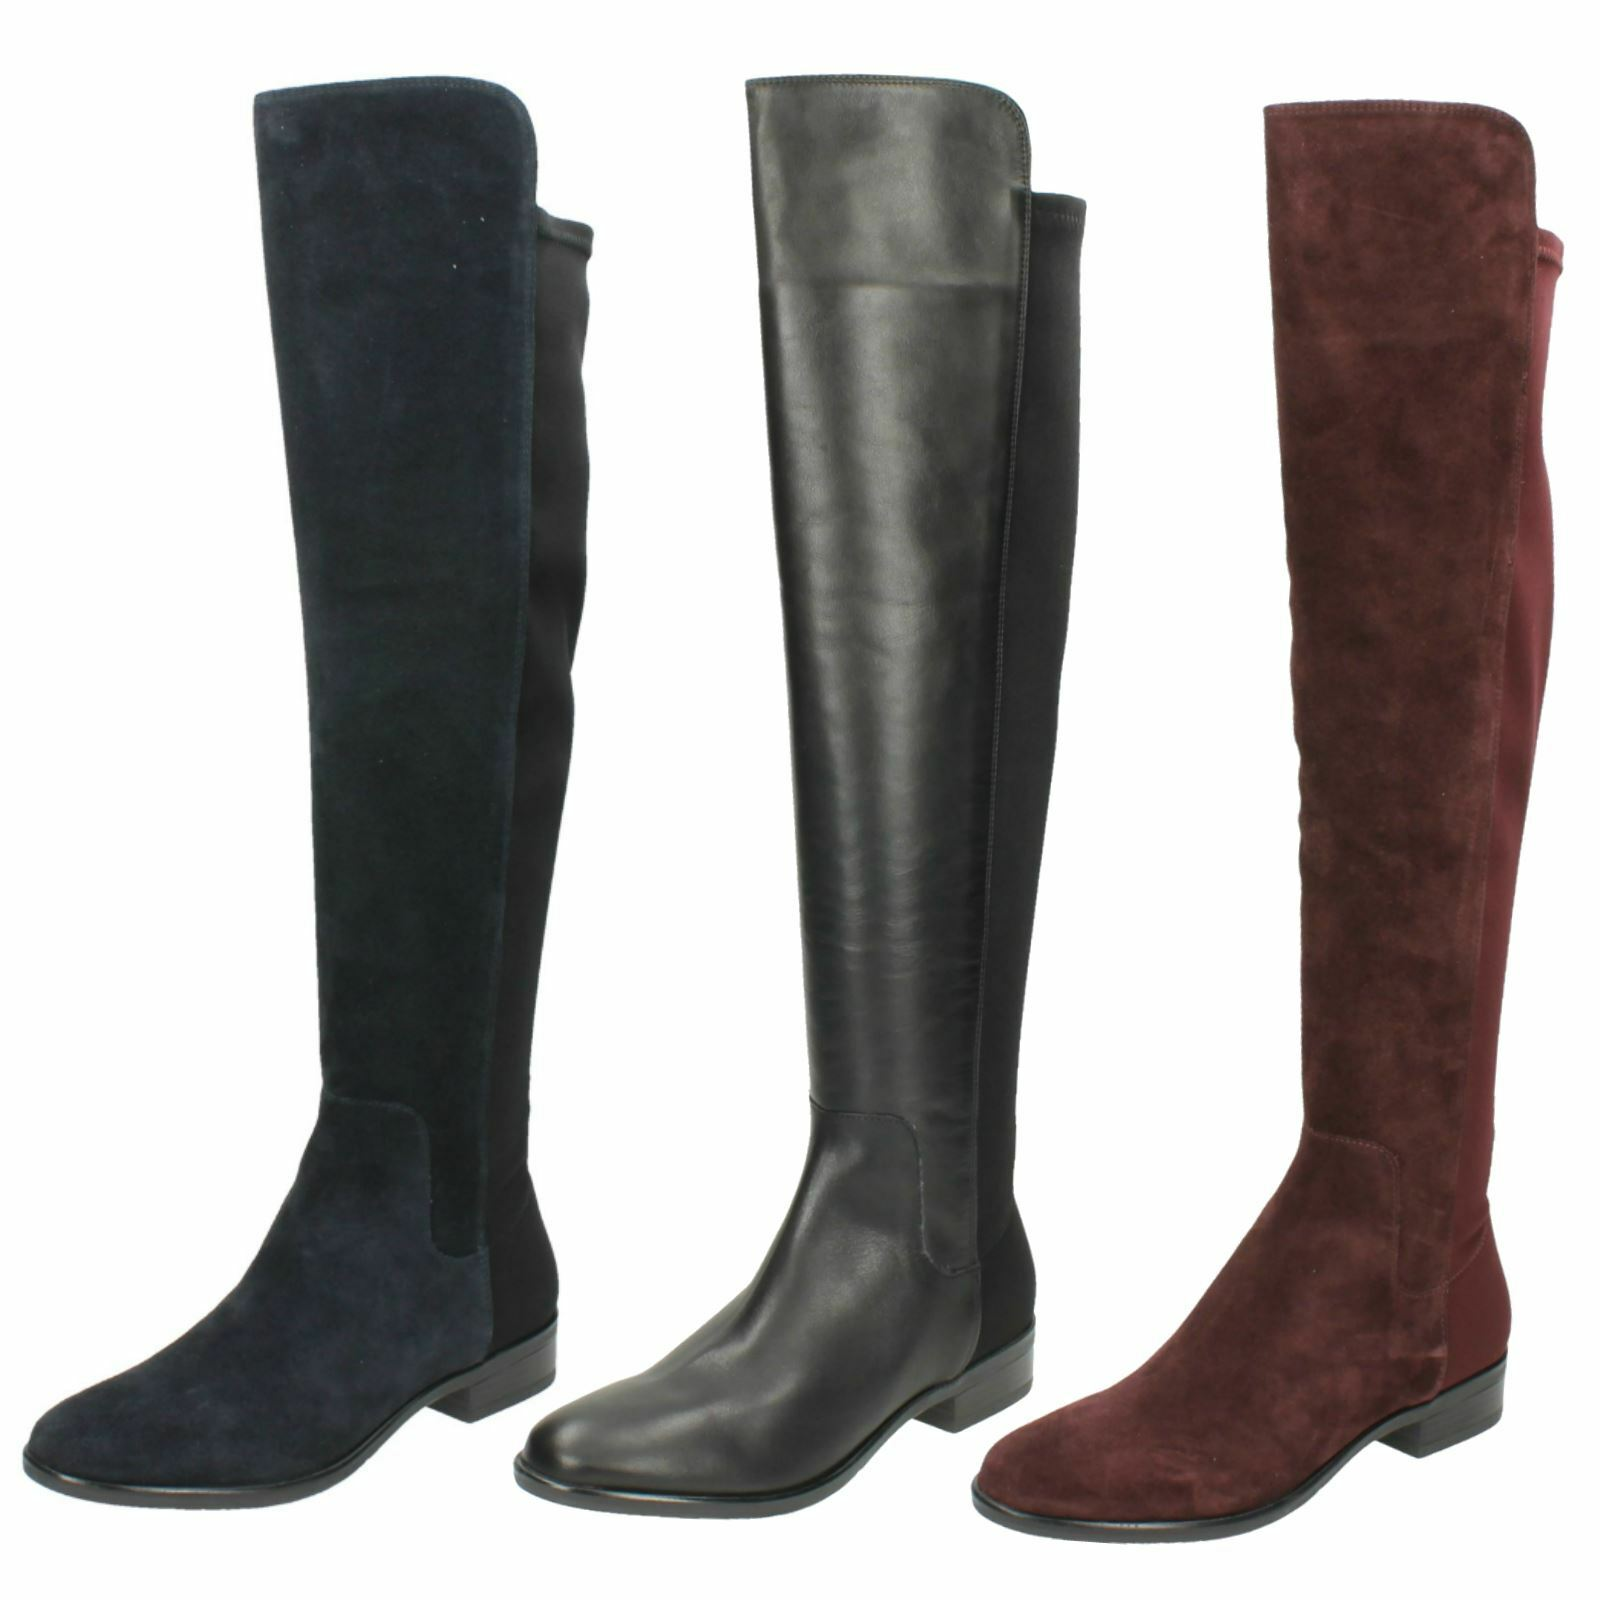 Ladies Clarks Casual Knee High Boots Caddy Belle